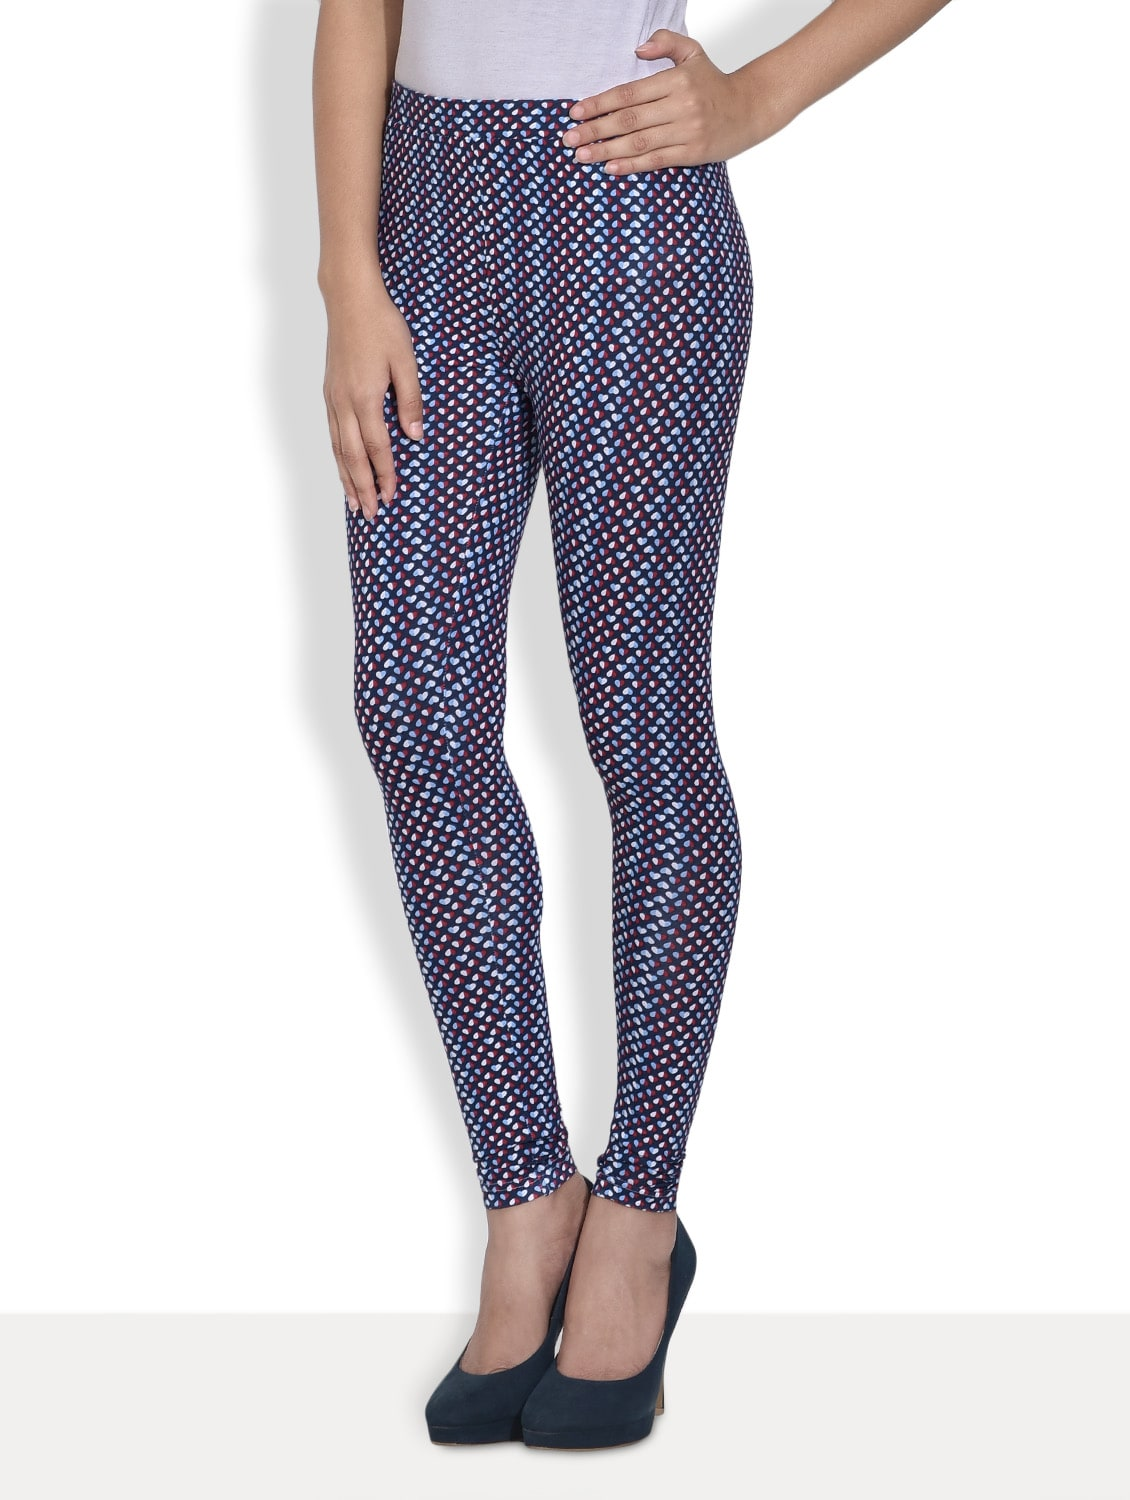 f9277052be7 Buy Navy Blue And White Printed Leggings for Women from Sera for ₹400 at 50%  off